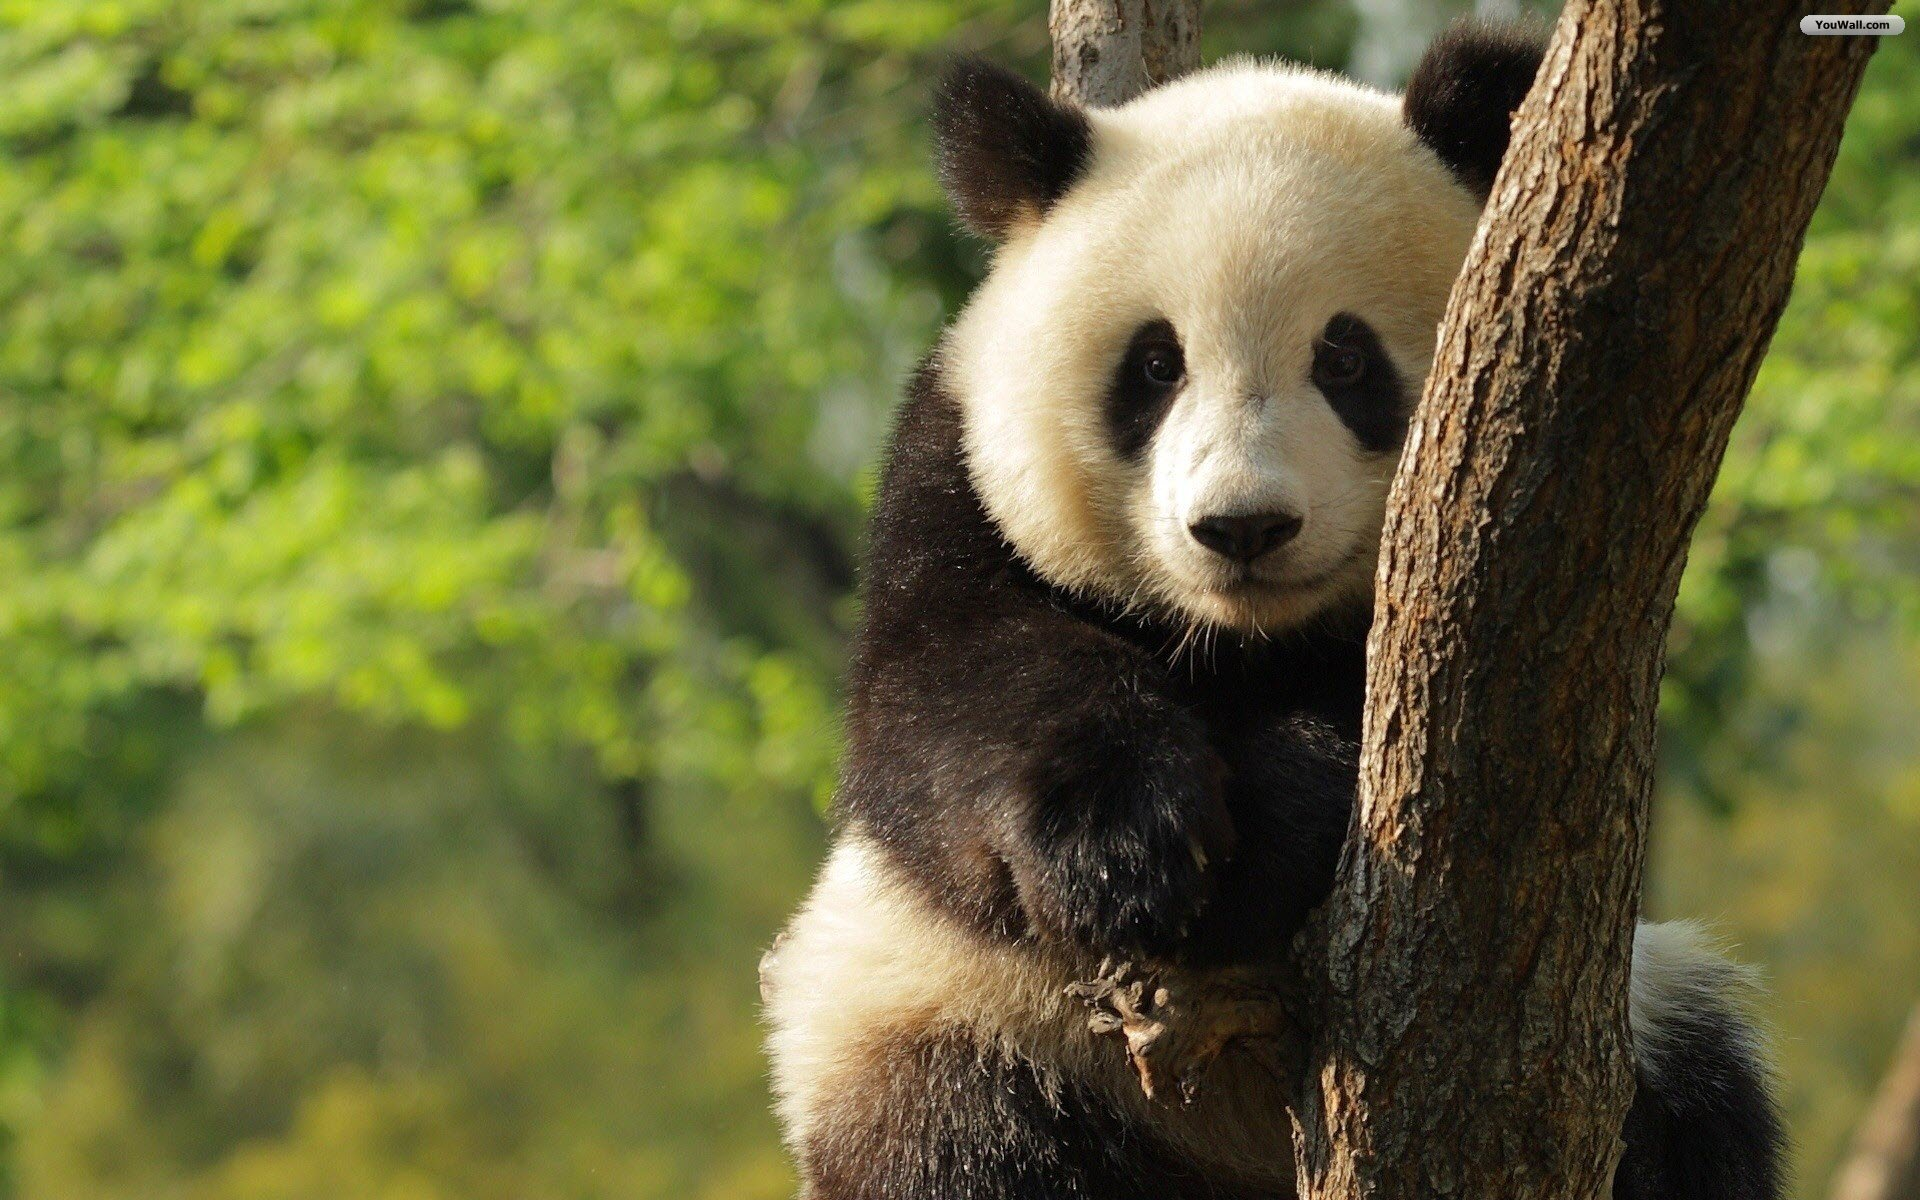 panda pictures hd wallpapers - photo #16